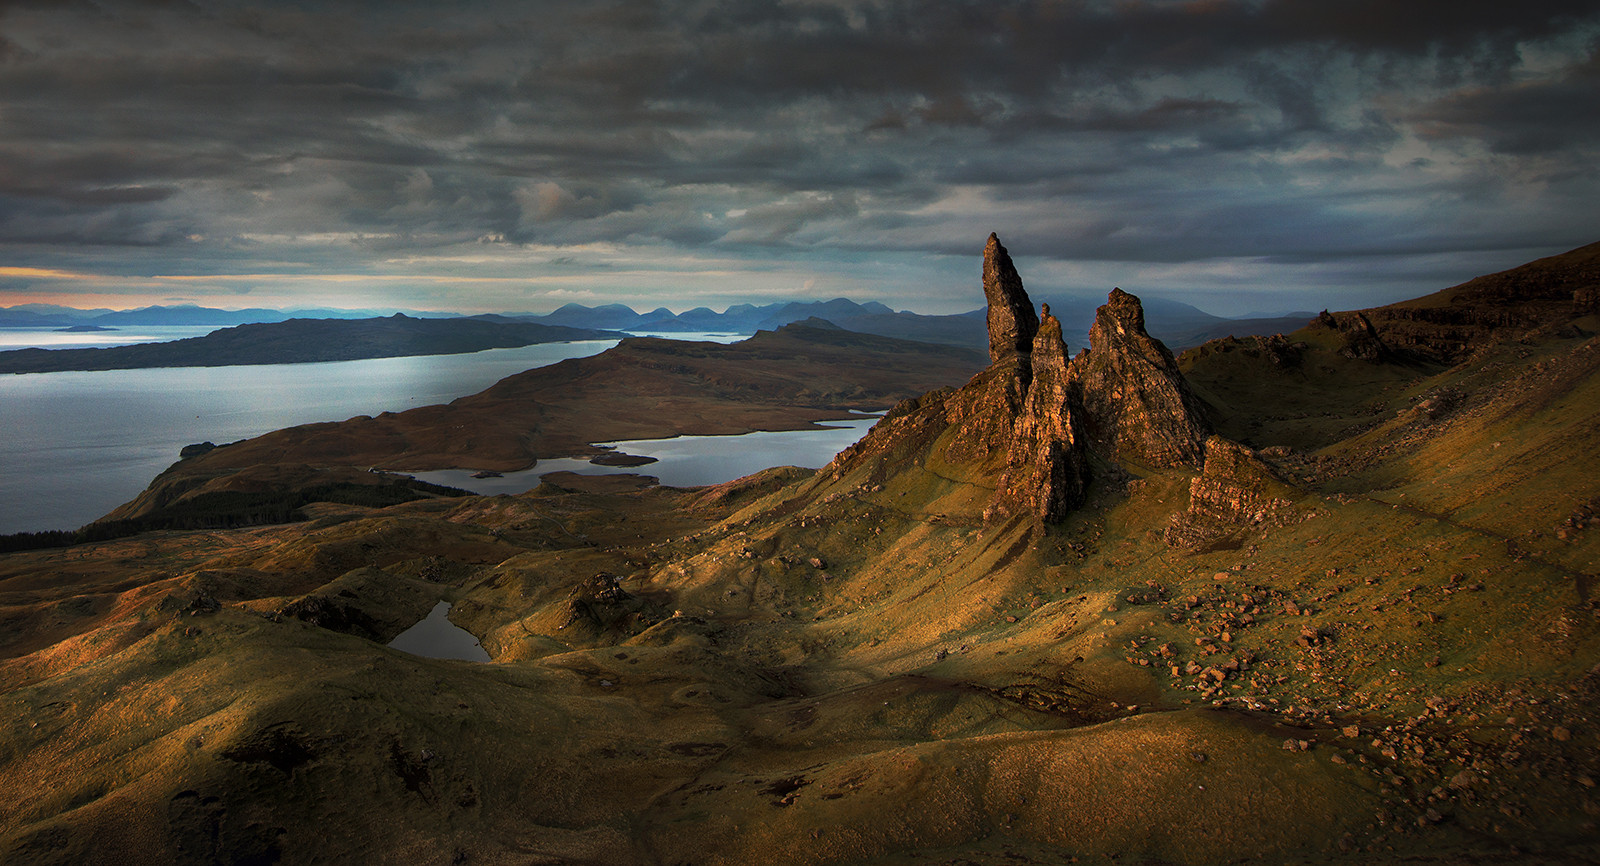 COLOUR - The Old Man of Storr by Roger Eager (12 marks)